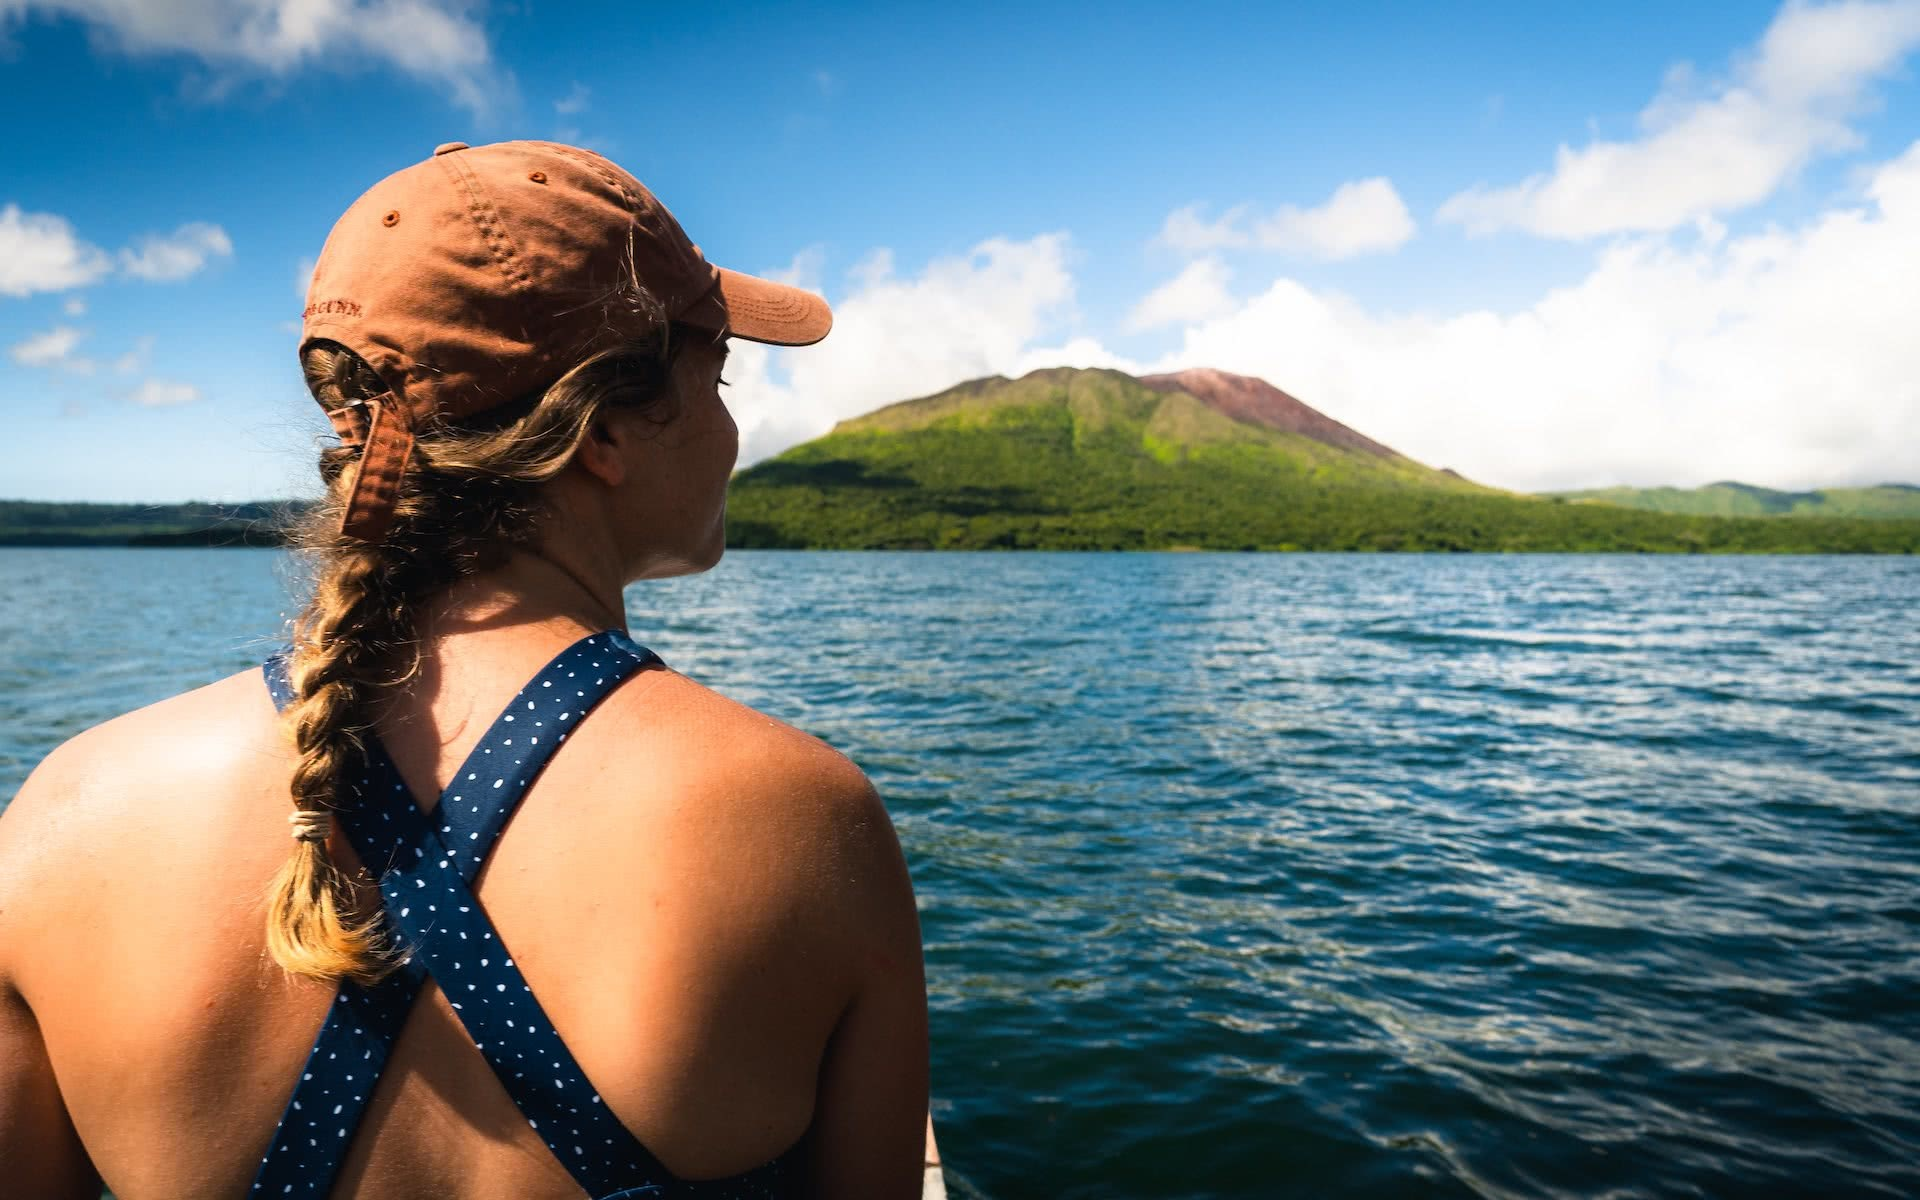 How a Visit to Vanuatu's Outer Islands Changed How I See the World, Ruby Claire, photos by Ben Savage and Ain Raadik, woman, hat, ocean, boat, island, sky, volcano, lake letas, Mt Gharat